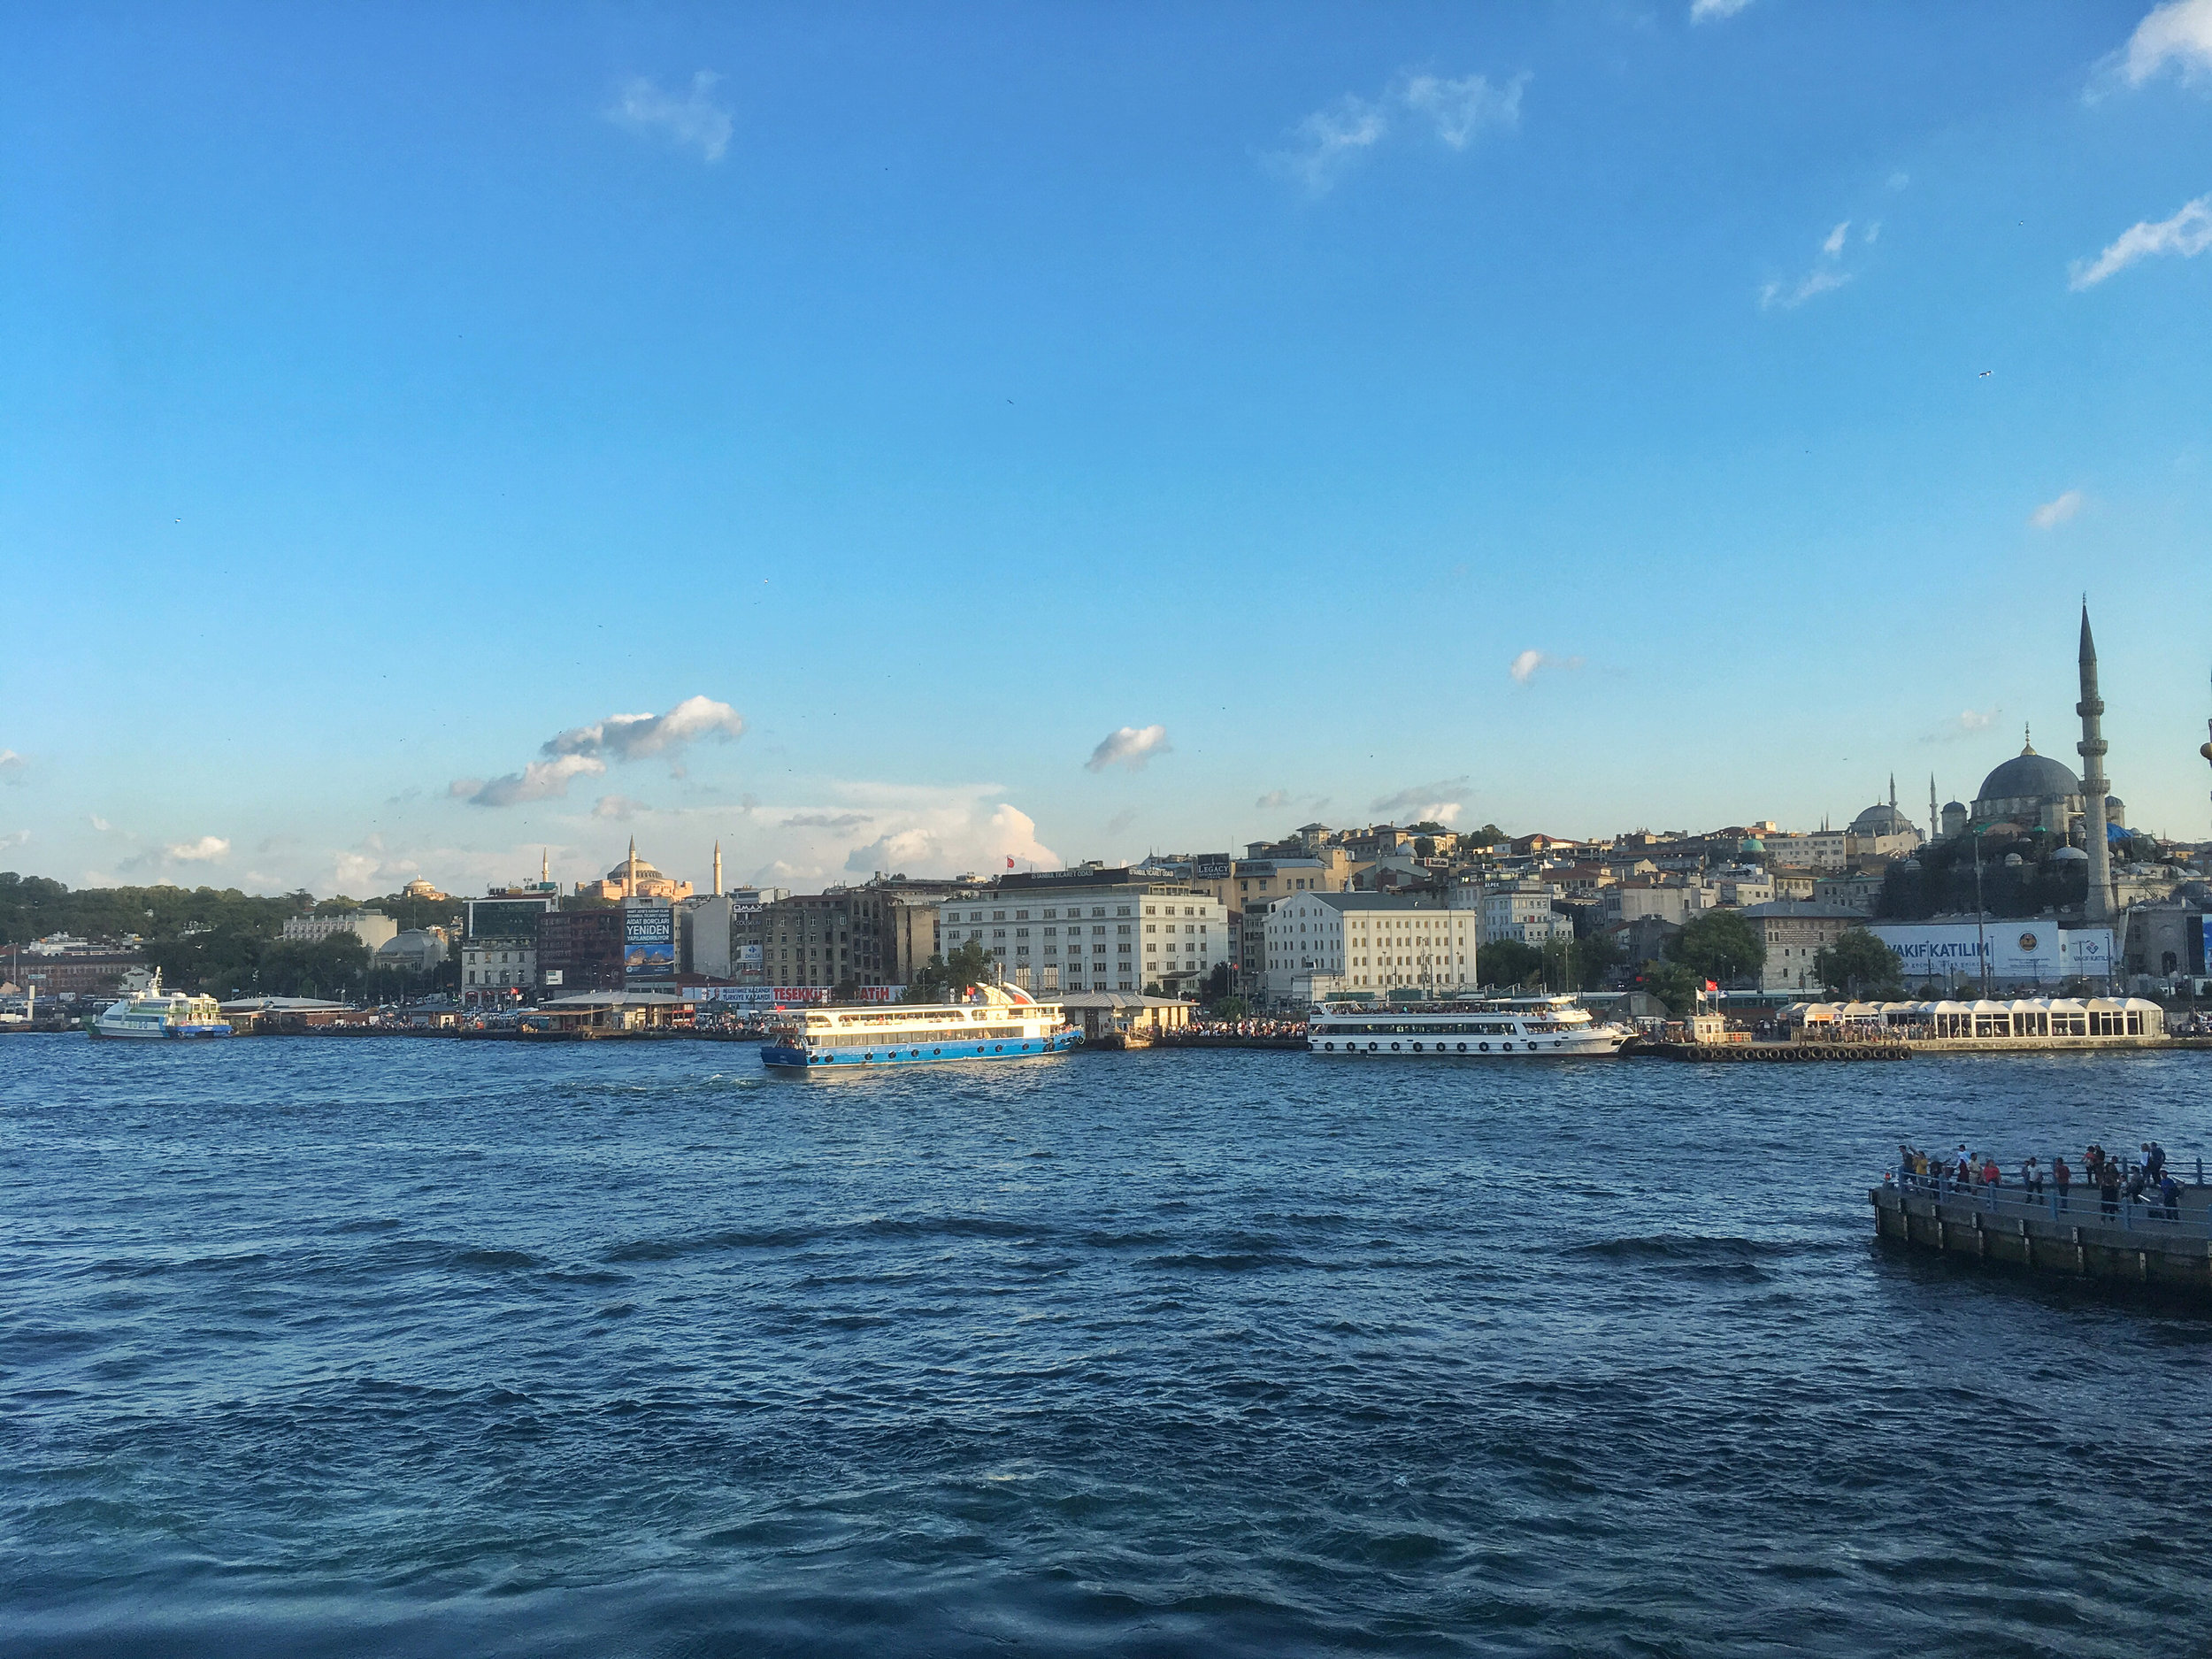 Sunset Cruising on the Bosphorus